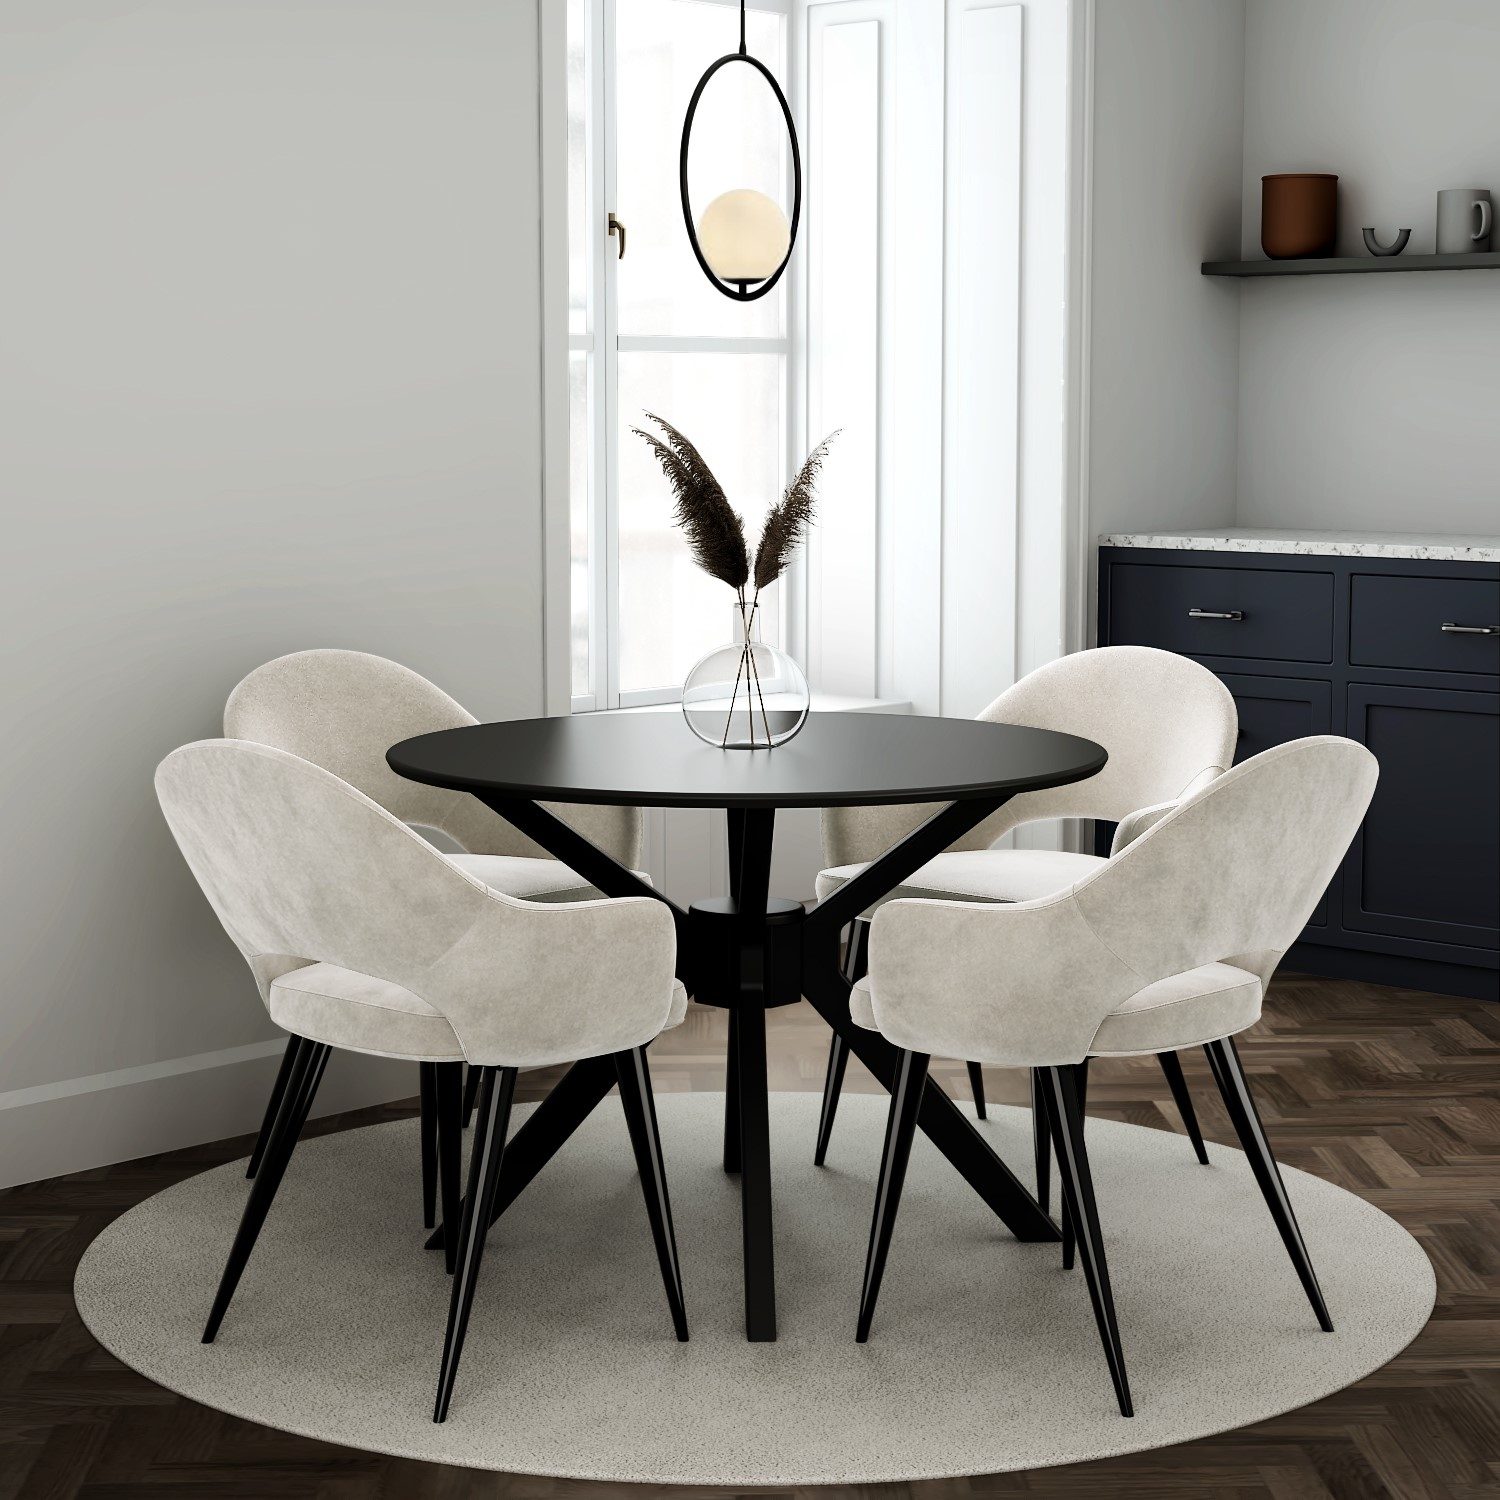 4 Seater Round Black Dining Set With 4 Beige Fabric Dining Chairs Furniture123